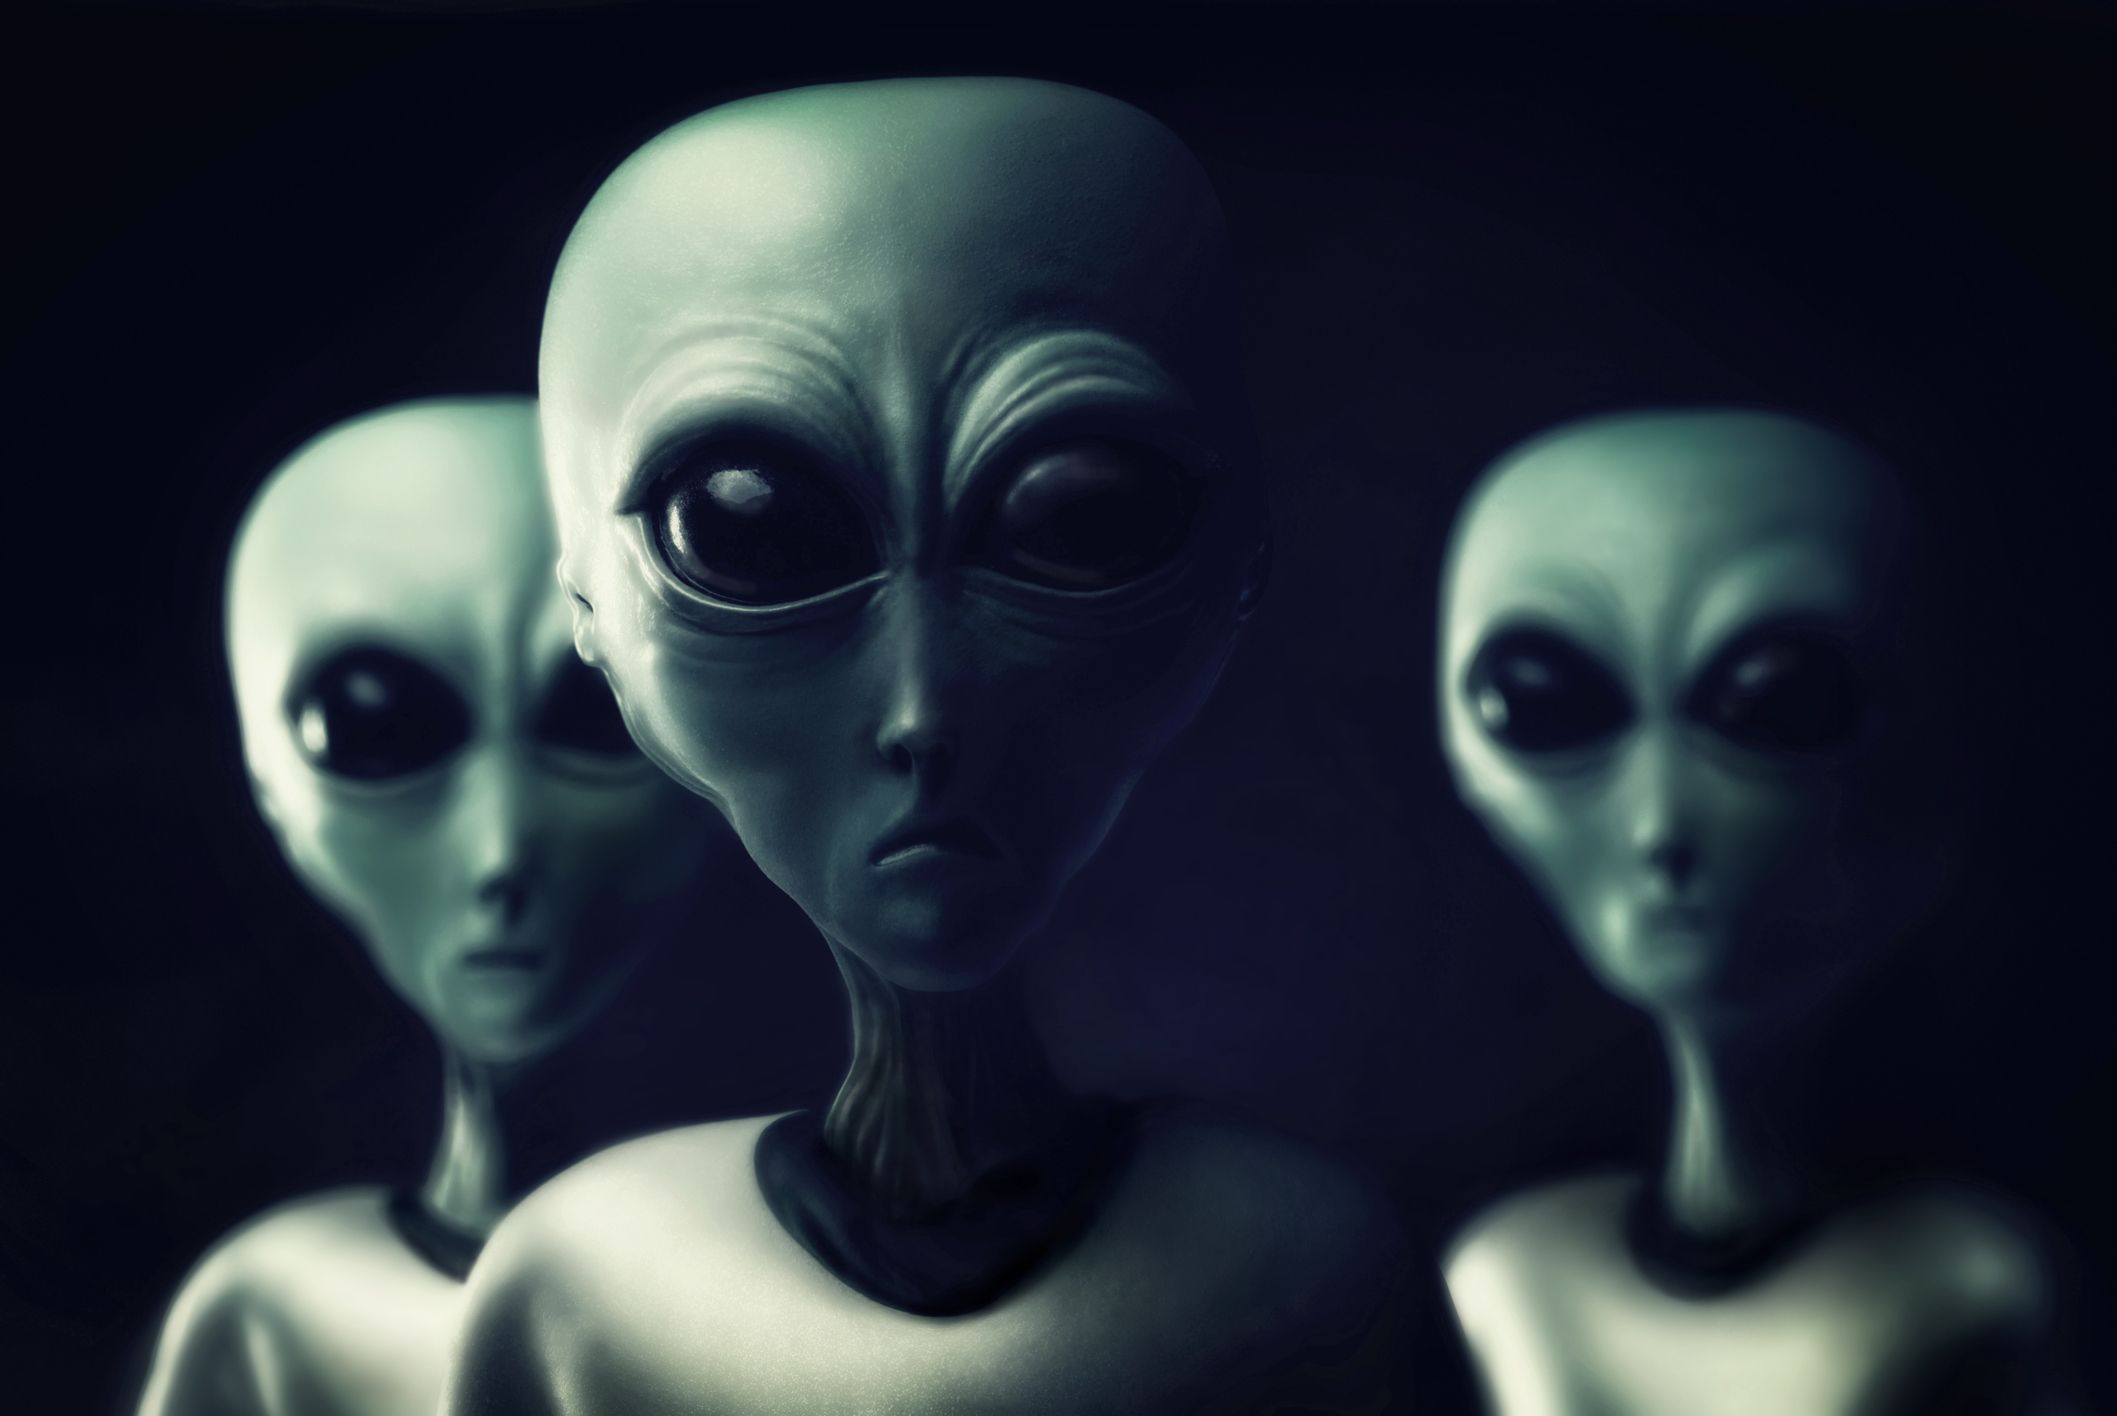 Three aliens.